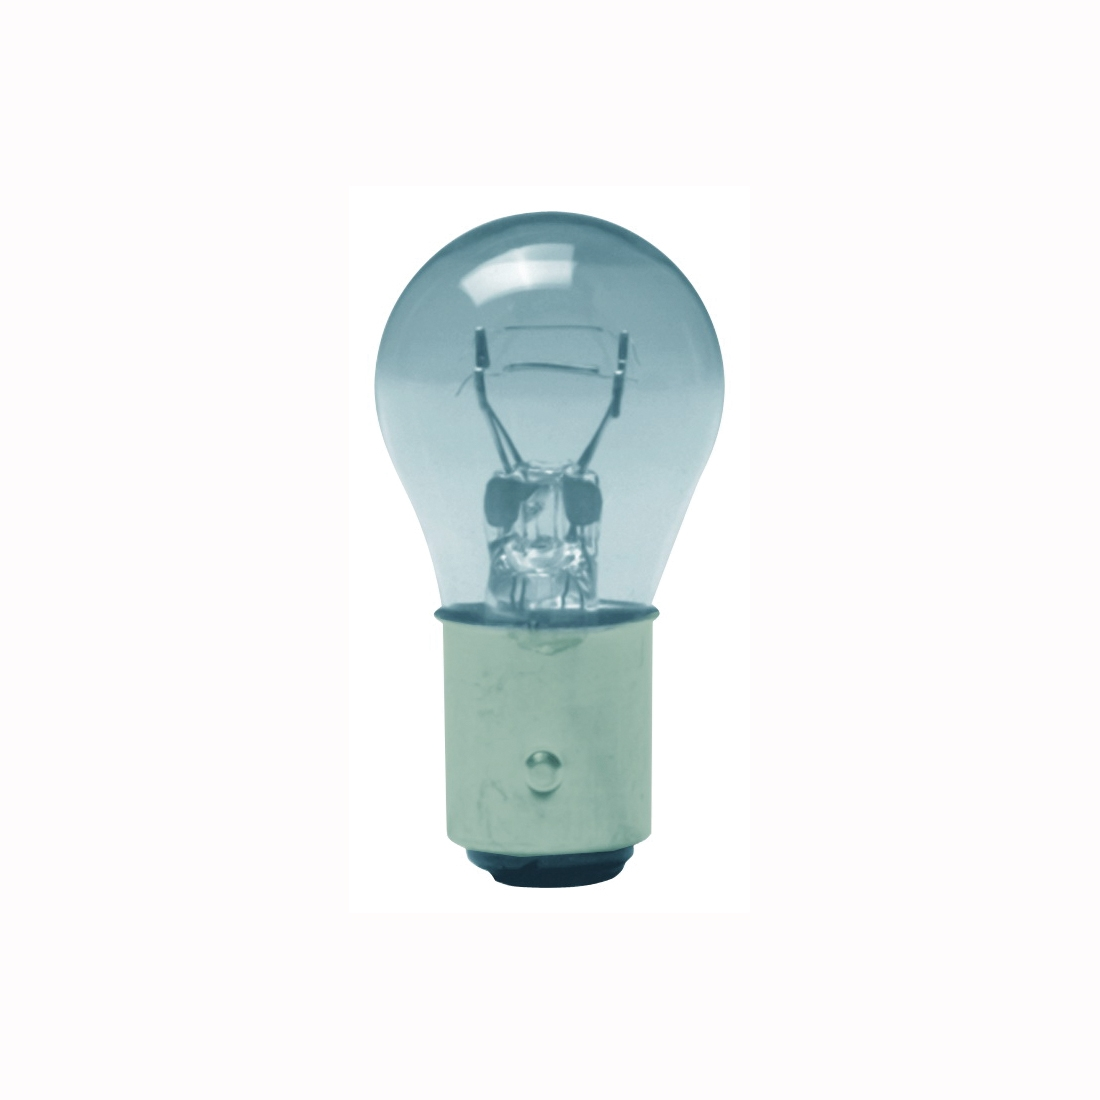 Picture of EIKO 1154-2BP Lamp, 6.4/7 V, S8 Lamp, Double Contact Base